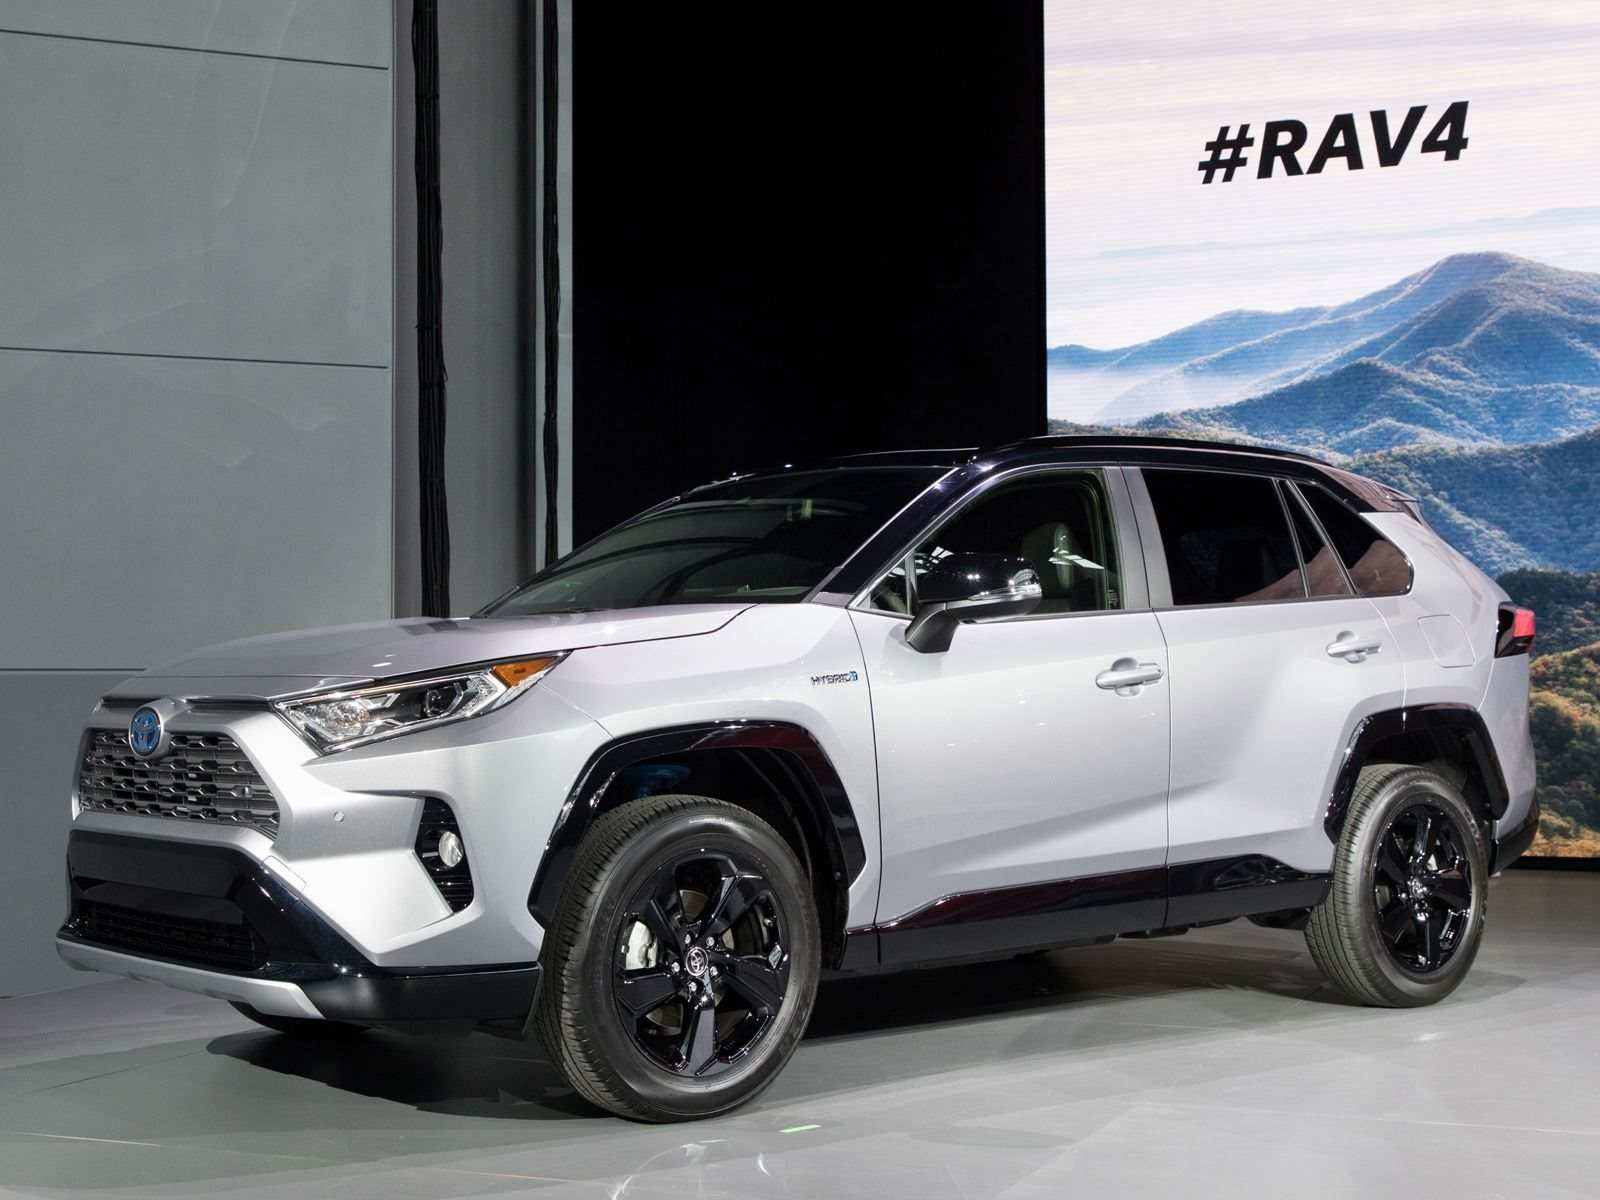 49 New 2019 Toyota Rav4 Specs Picture Release Date And Review Reviews by 2019 Toyota Rav4 Specs Picture Release Date And Review